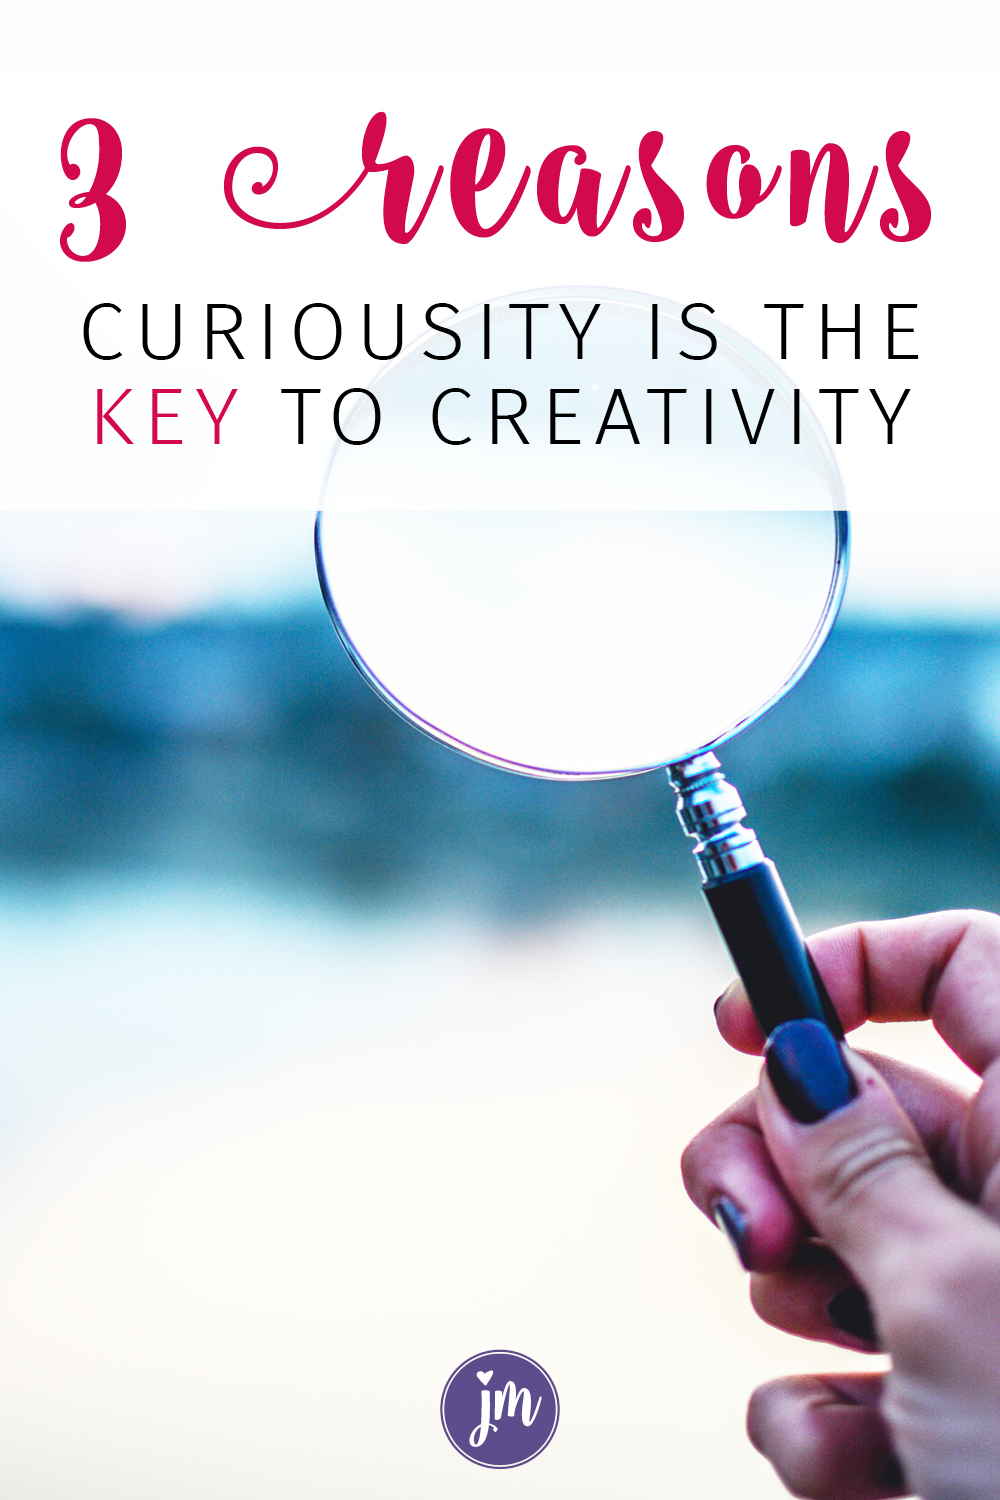 Want to get out of a creative slump? Then get curious! Curiousity is a proven method to increase your creative potential. Learn why...